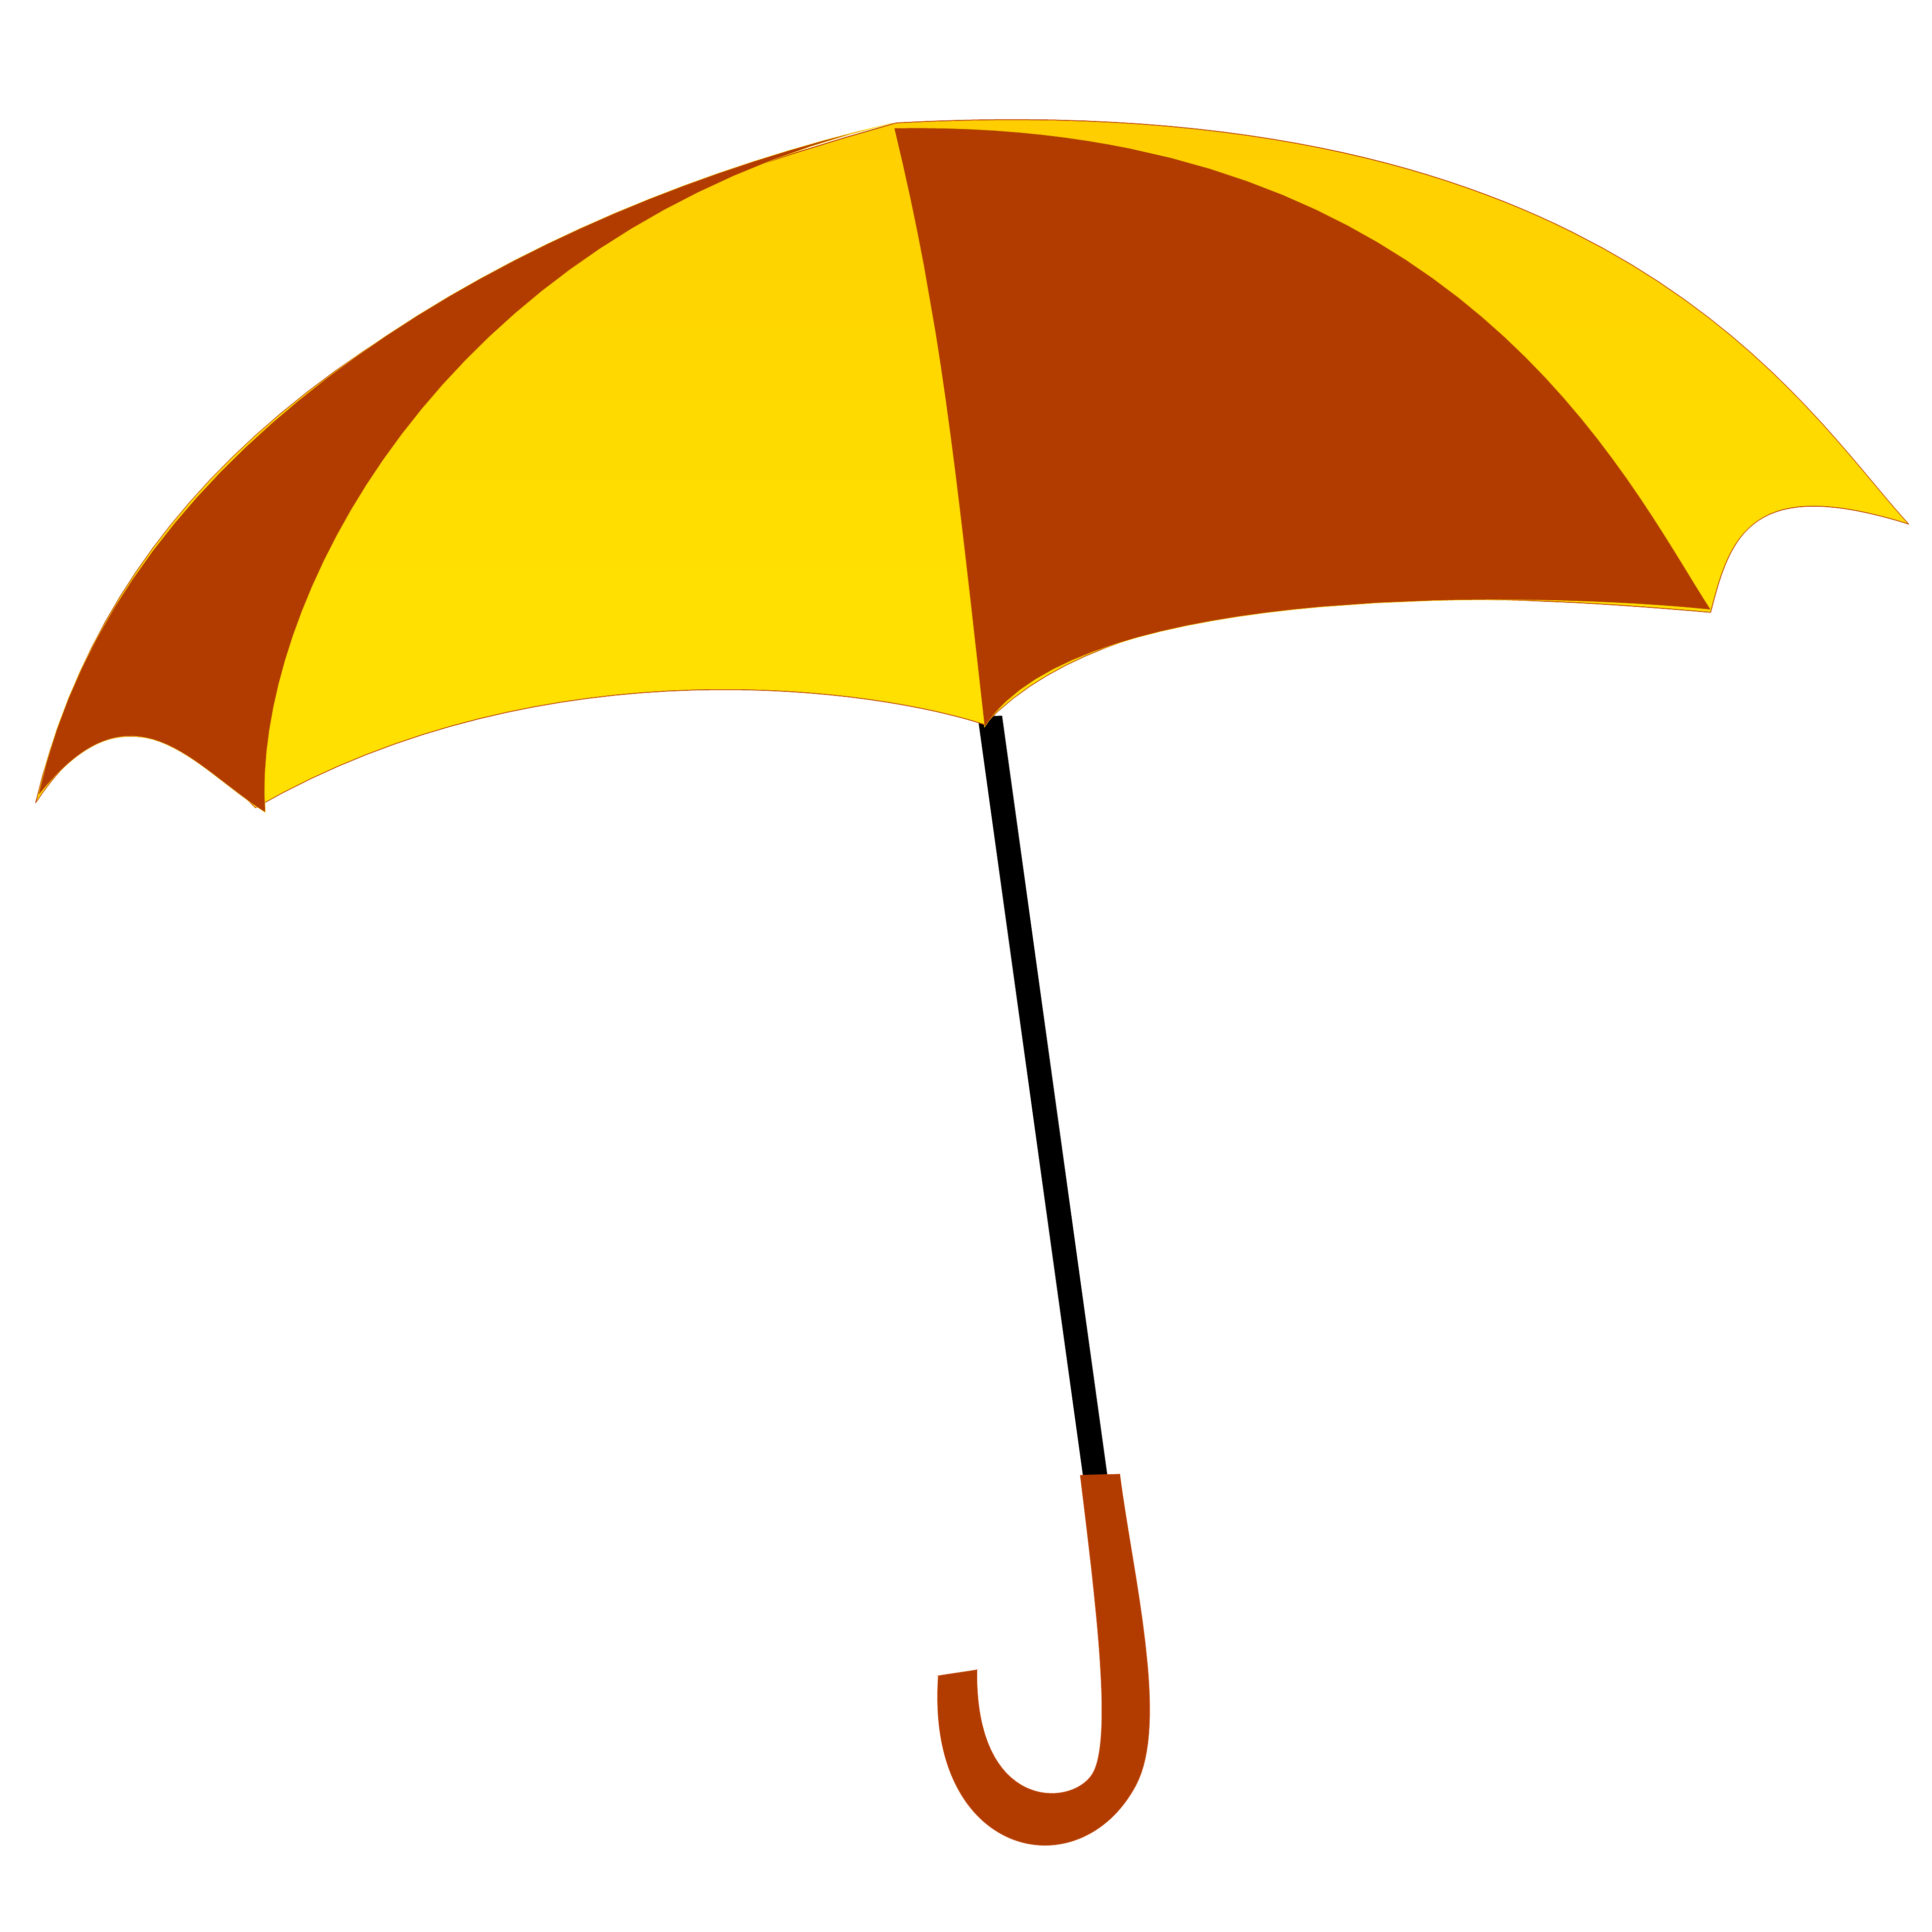 Umbreala clipart clipart royalty free library Umbrella Clipart PNG Image - PurePNG | Free transparent CC0 ... clipart royalty free library